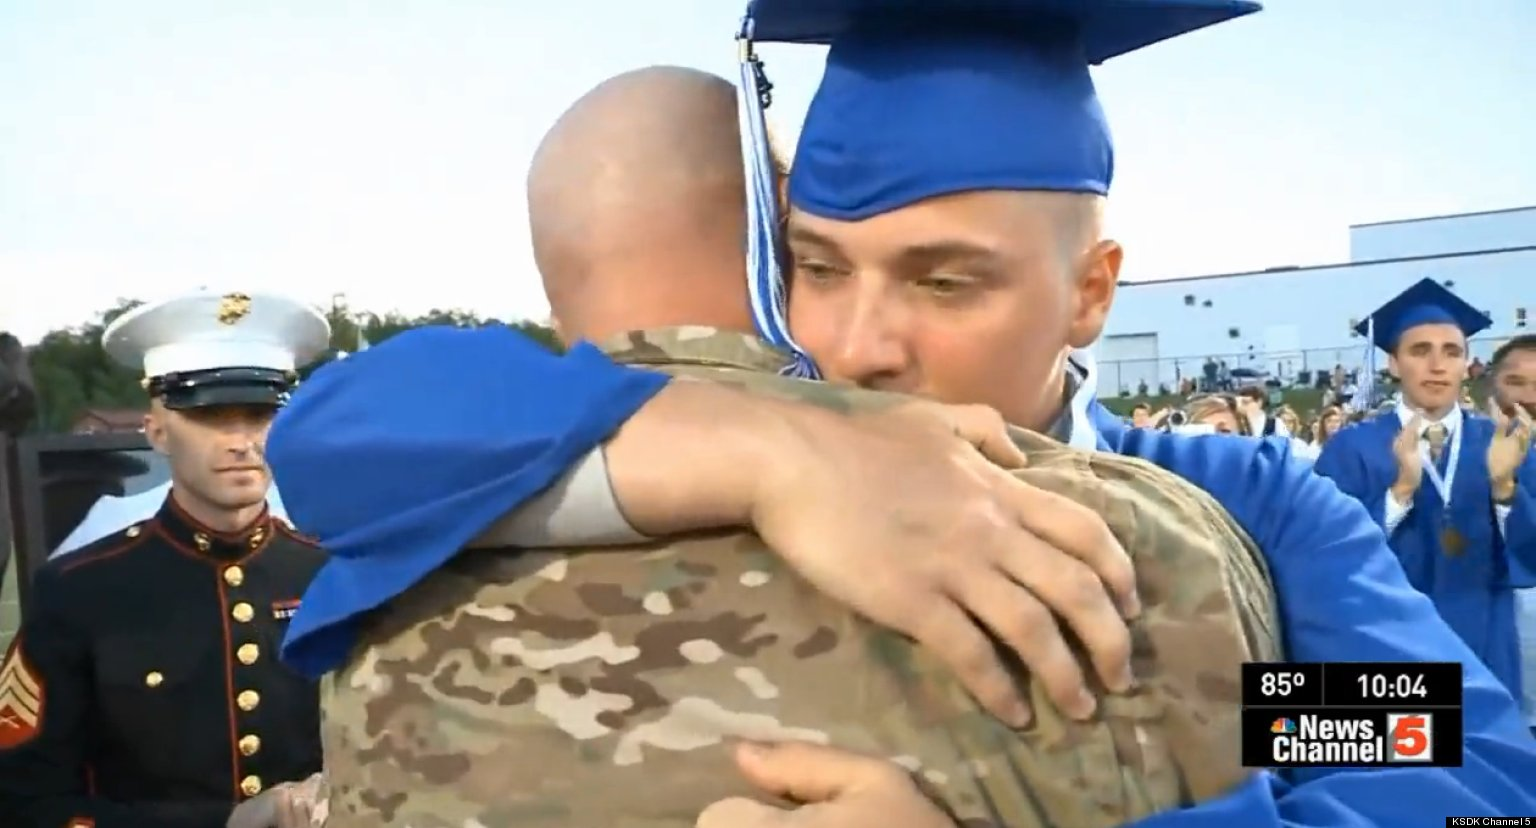 Dad's Unbelievably Sweet Graduation Surprise For His Son (VIDEO)